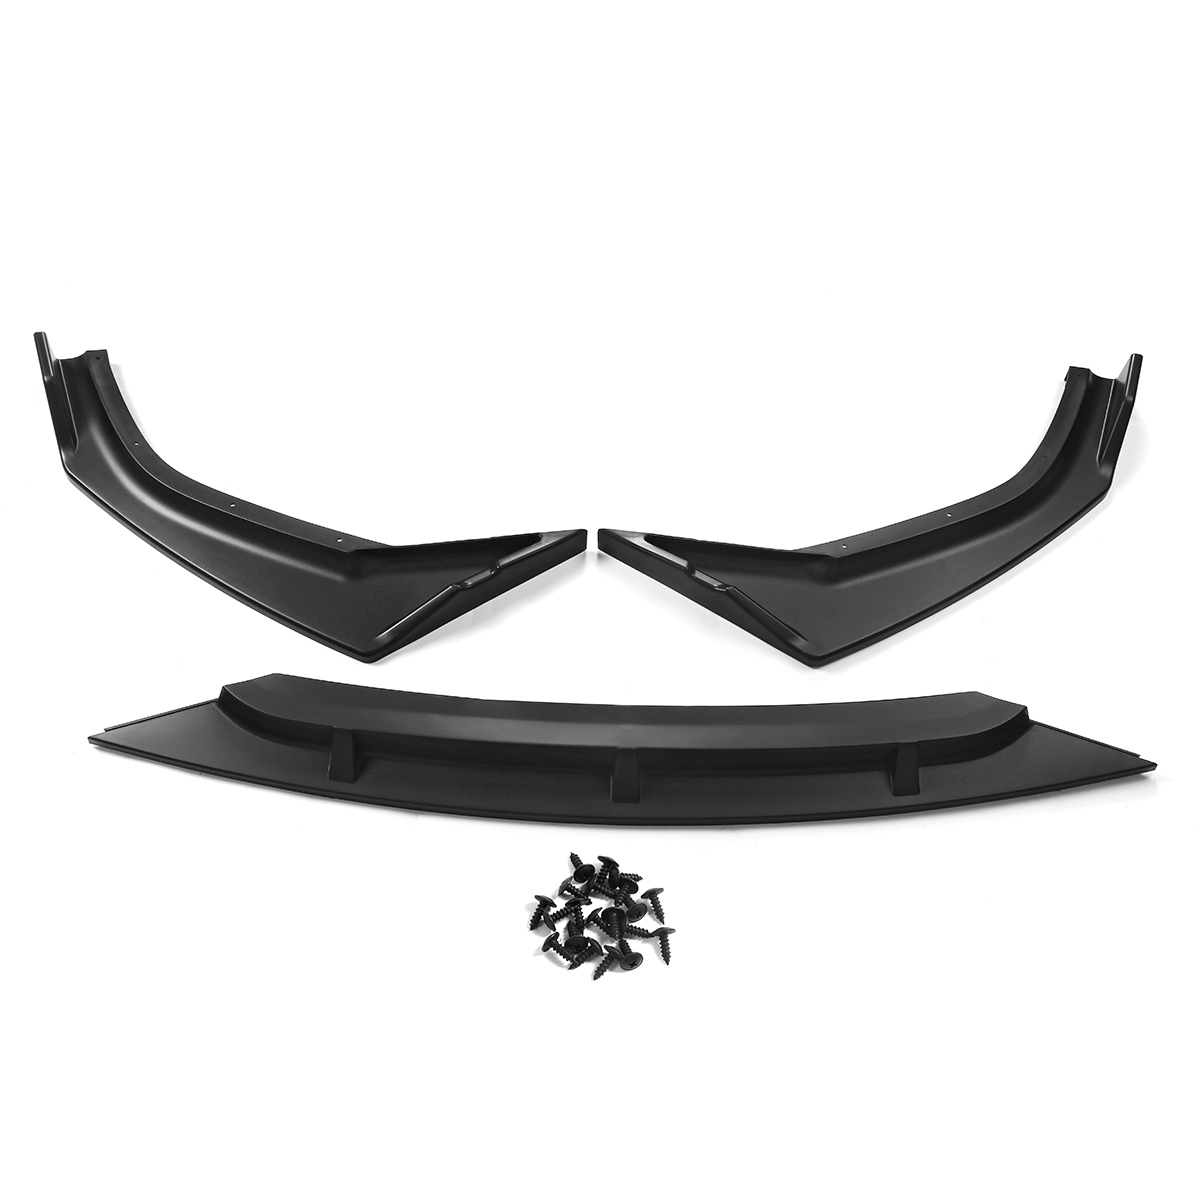 2019 New 3 piece Car Front Bumper Splitter Lip Body Kit Spoiler Diffuser Guard Trim Deflector Lips For Honda For <font><b>Civic</b></font> 2019-2020 image